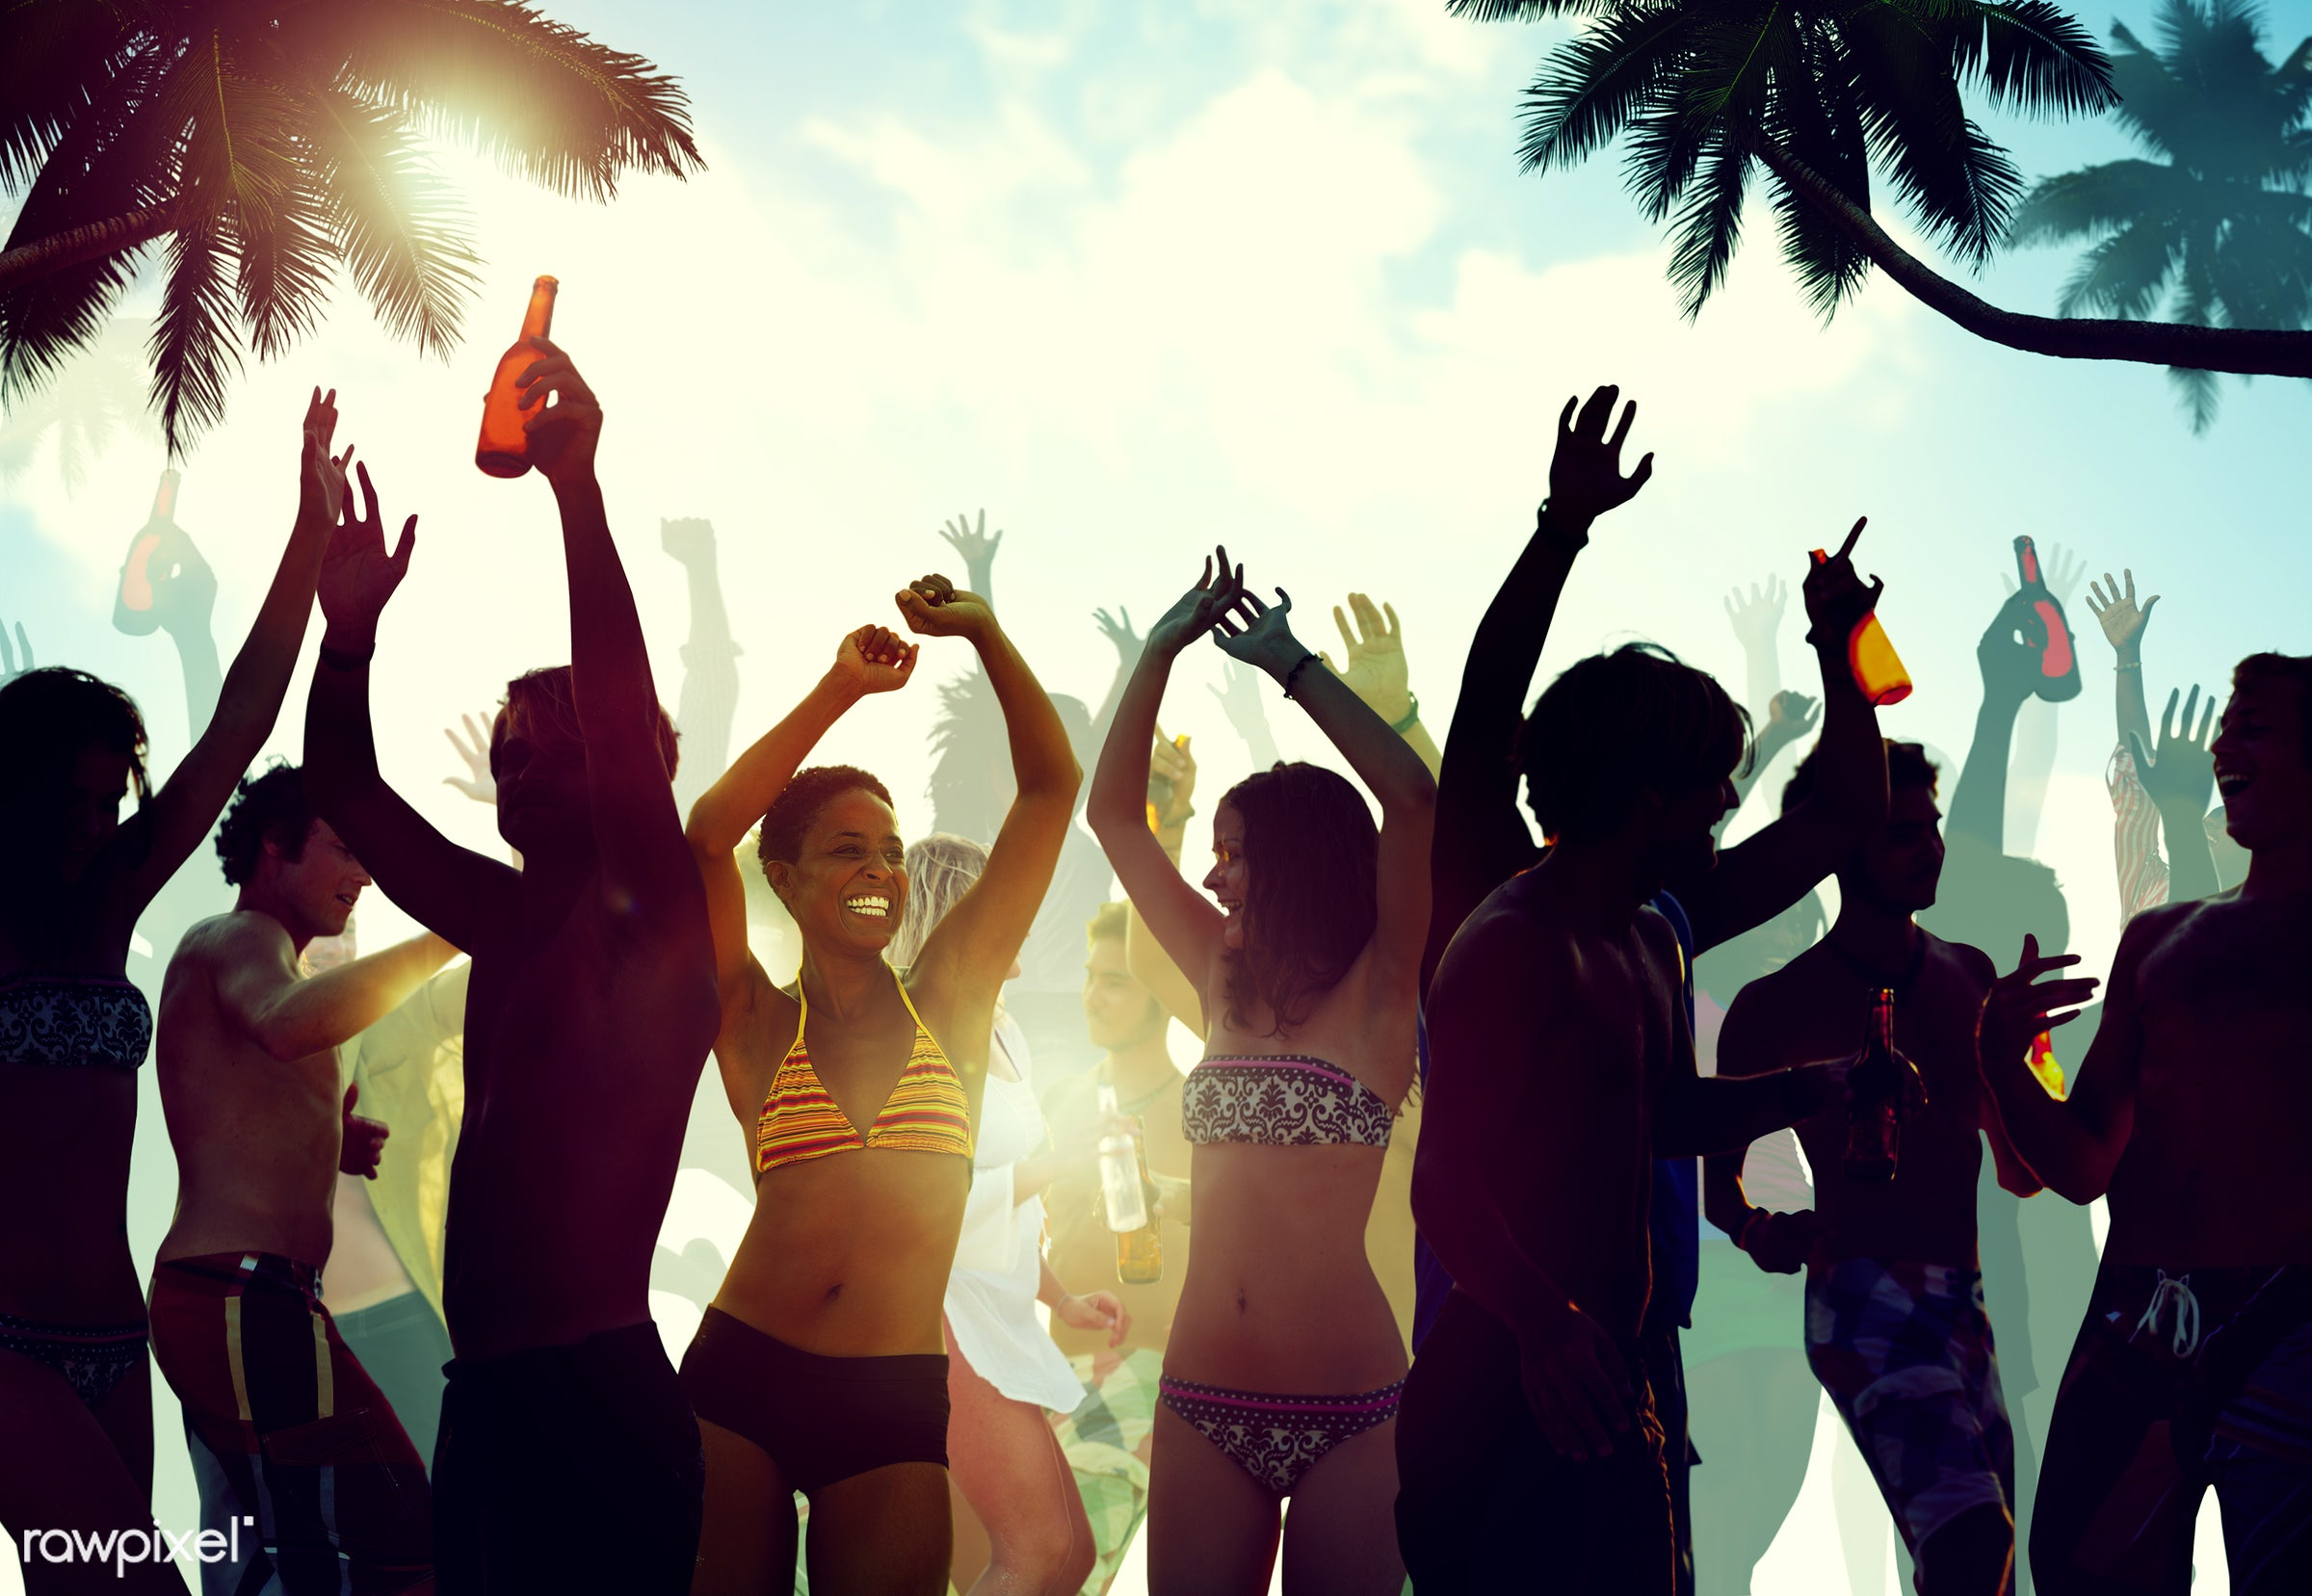 activity, alcohol, arms outstretched, arms raised, back lit, beach, beer, bikini, celebration, cheerful, cheering, coconut...